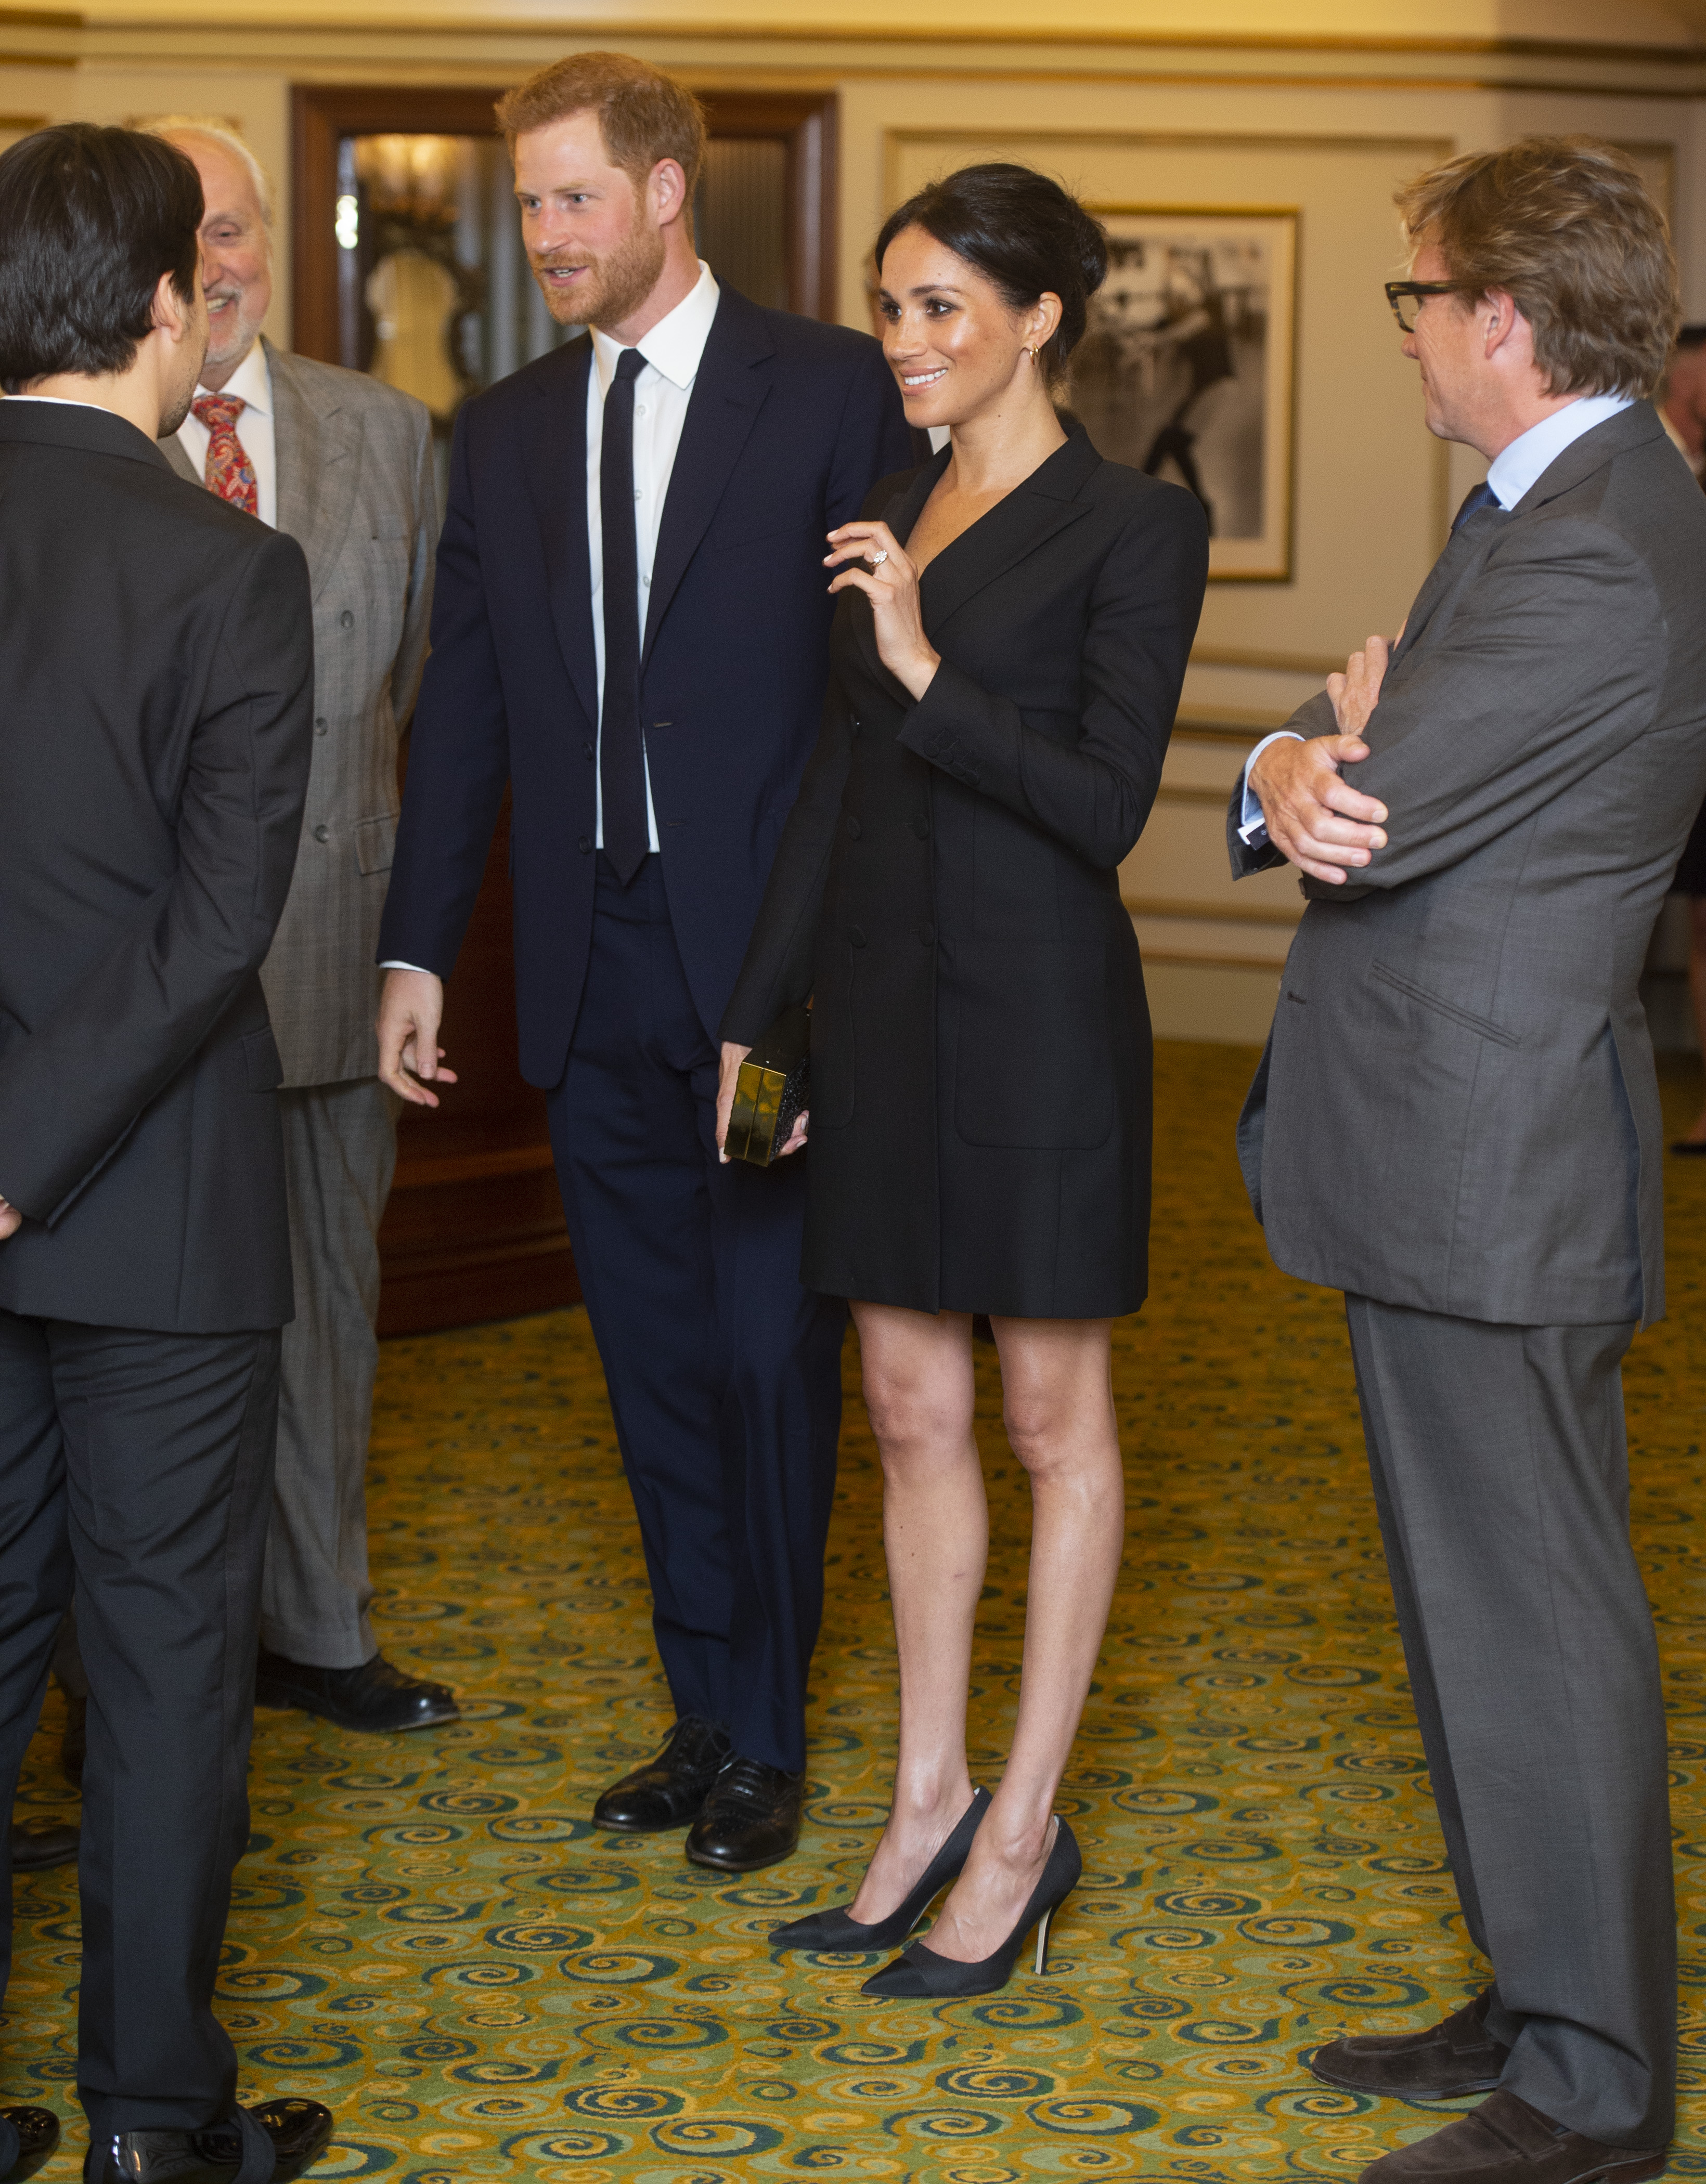 """Prince Harry, Duke of Sussex and Meghan, Duchess of Sussex speak with writer Lin Manuel Miranda and others from Sentibale as they attend a gala performance of """"Hamilton"""" in support of Sentebale at Victoria Palace Theatre on August 29, 2018 in London, England. (Photo by Dan Charity - WPA Pool/Getty Images)"""